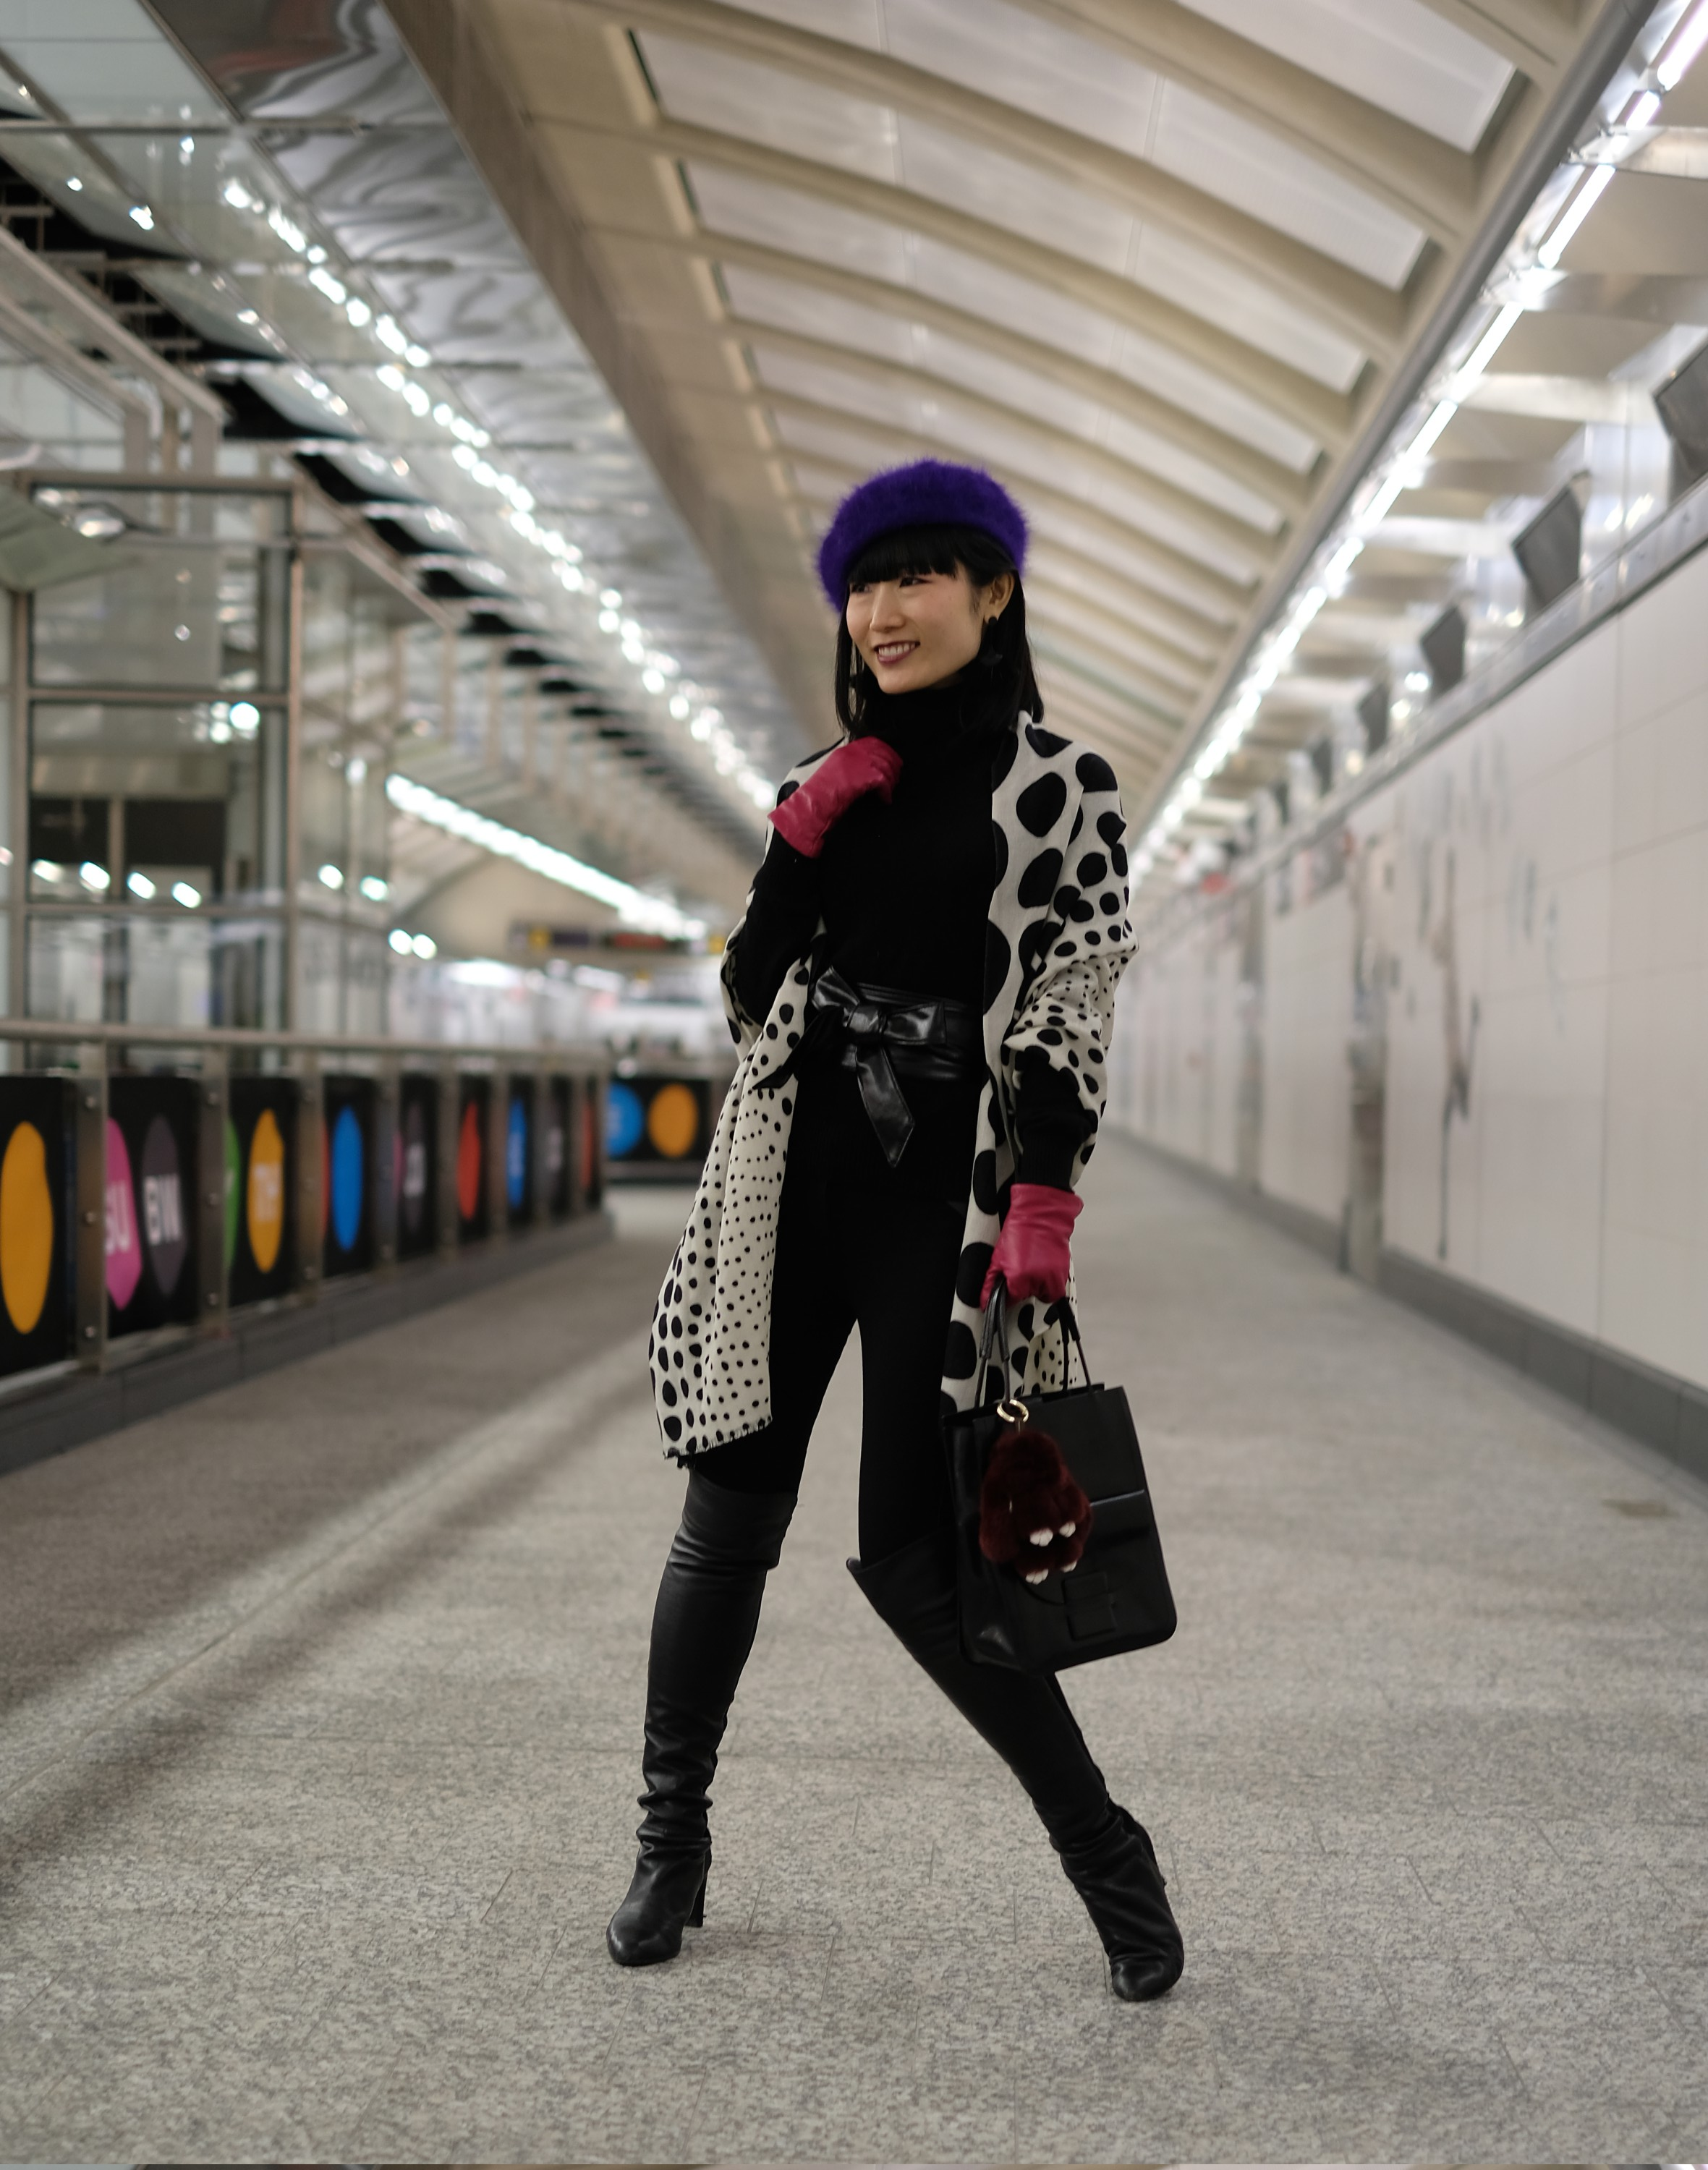 model in subway station